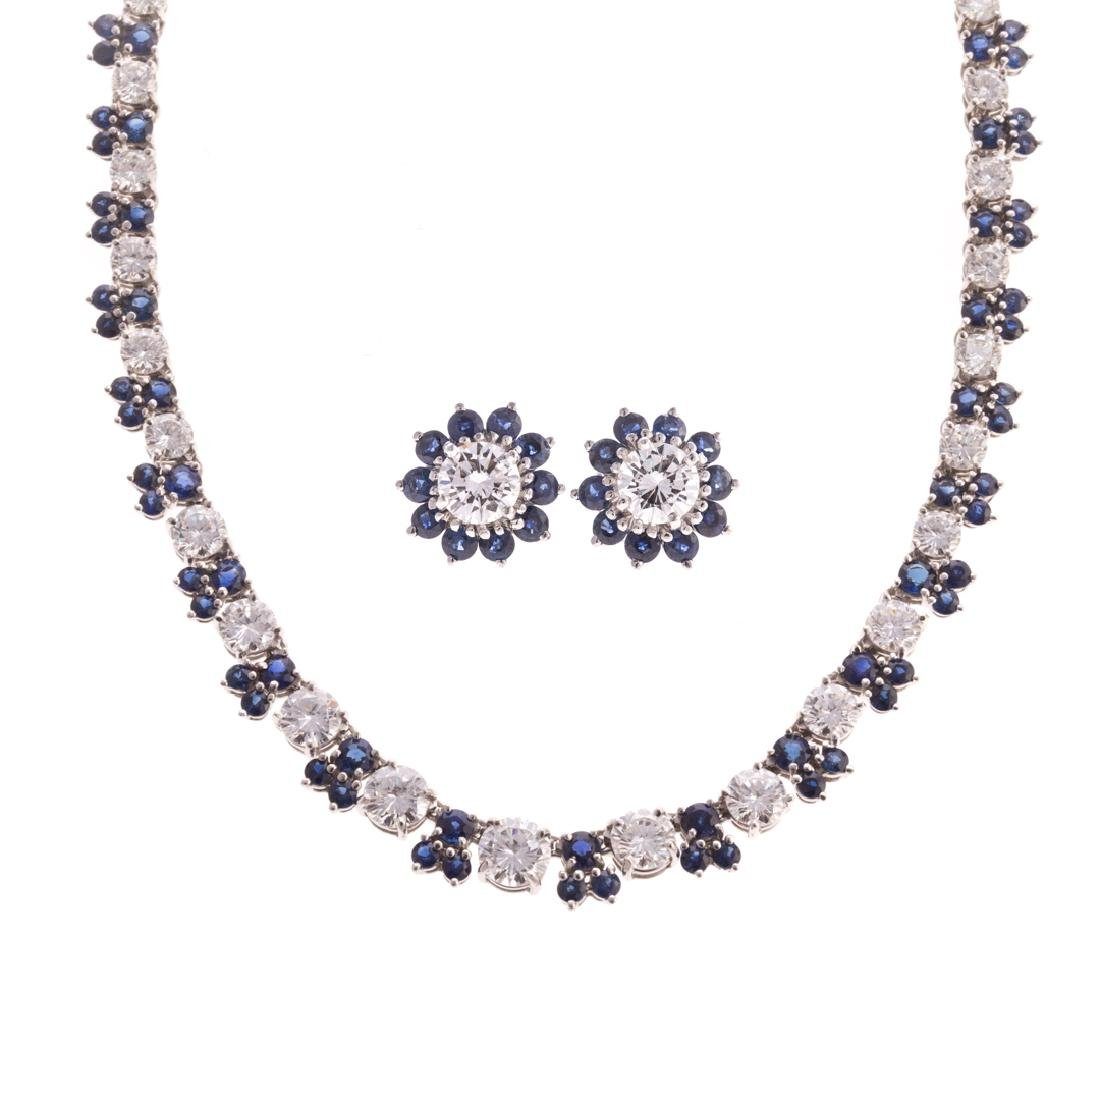 A Platinum, Sapphire & Diamond Necklace & Earrings